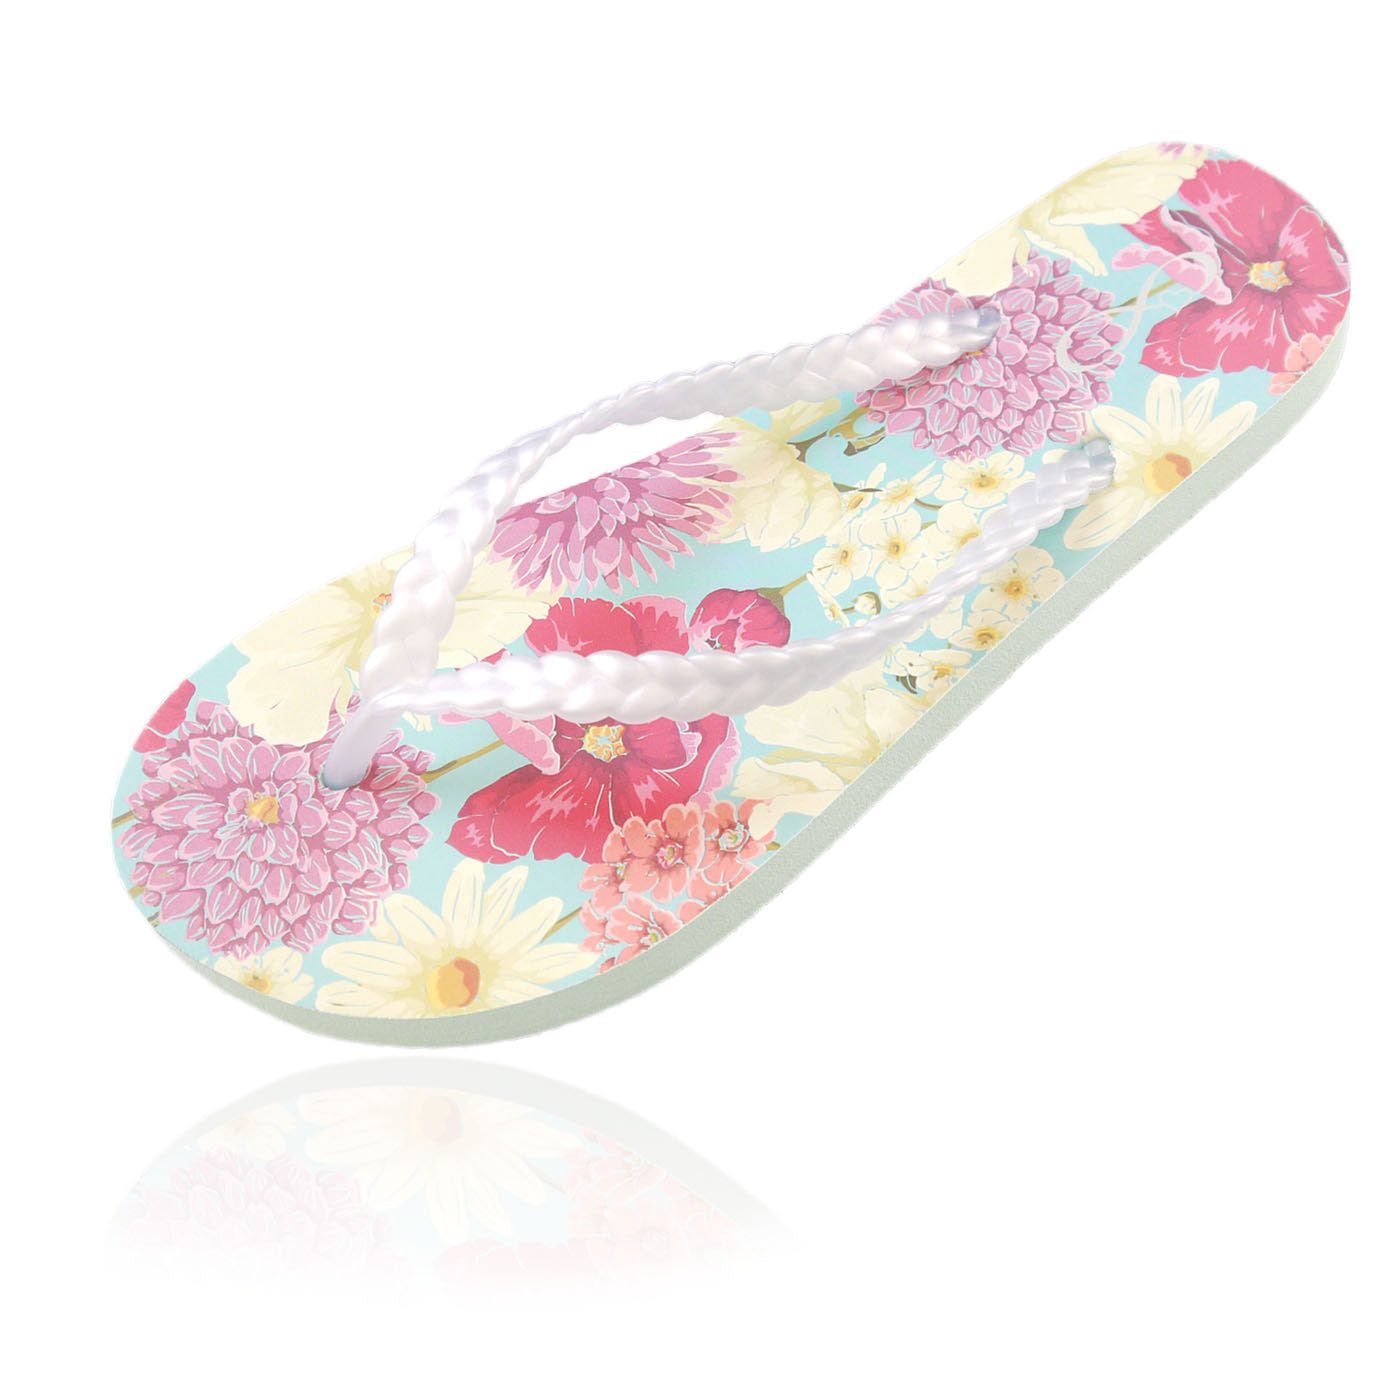 10 Pairs of floral print flip-flops in a Party box